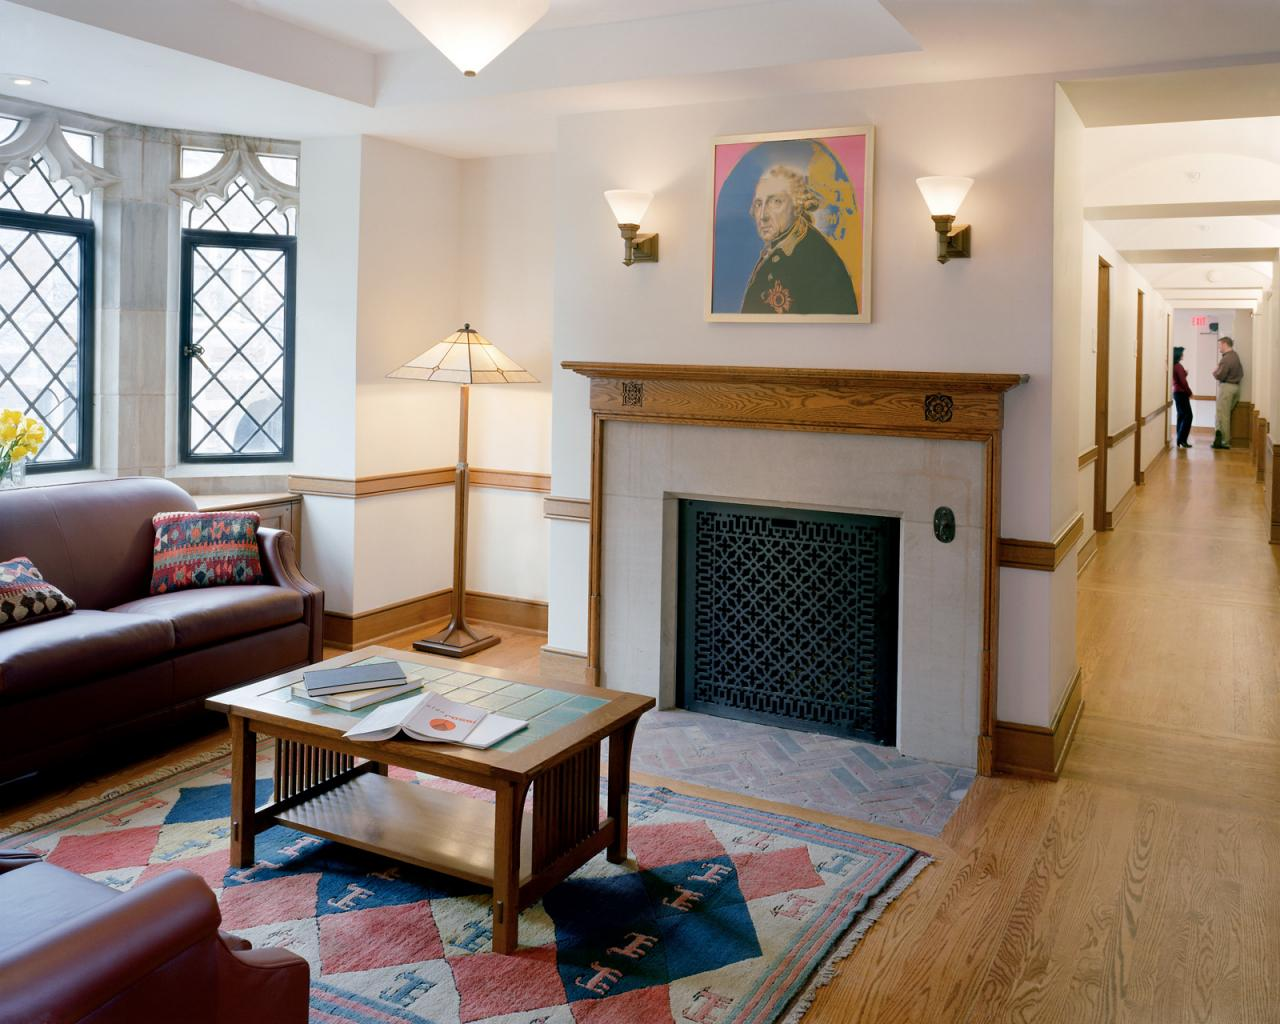 Wonderful ... Law School Dormitory Renovation, Yale University ... Part 28